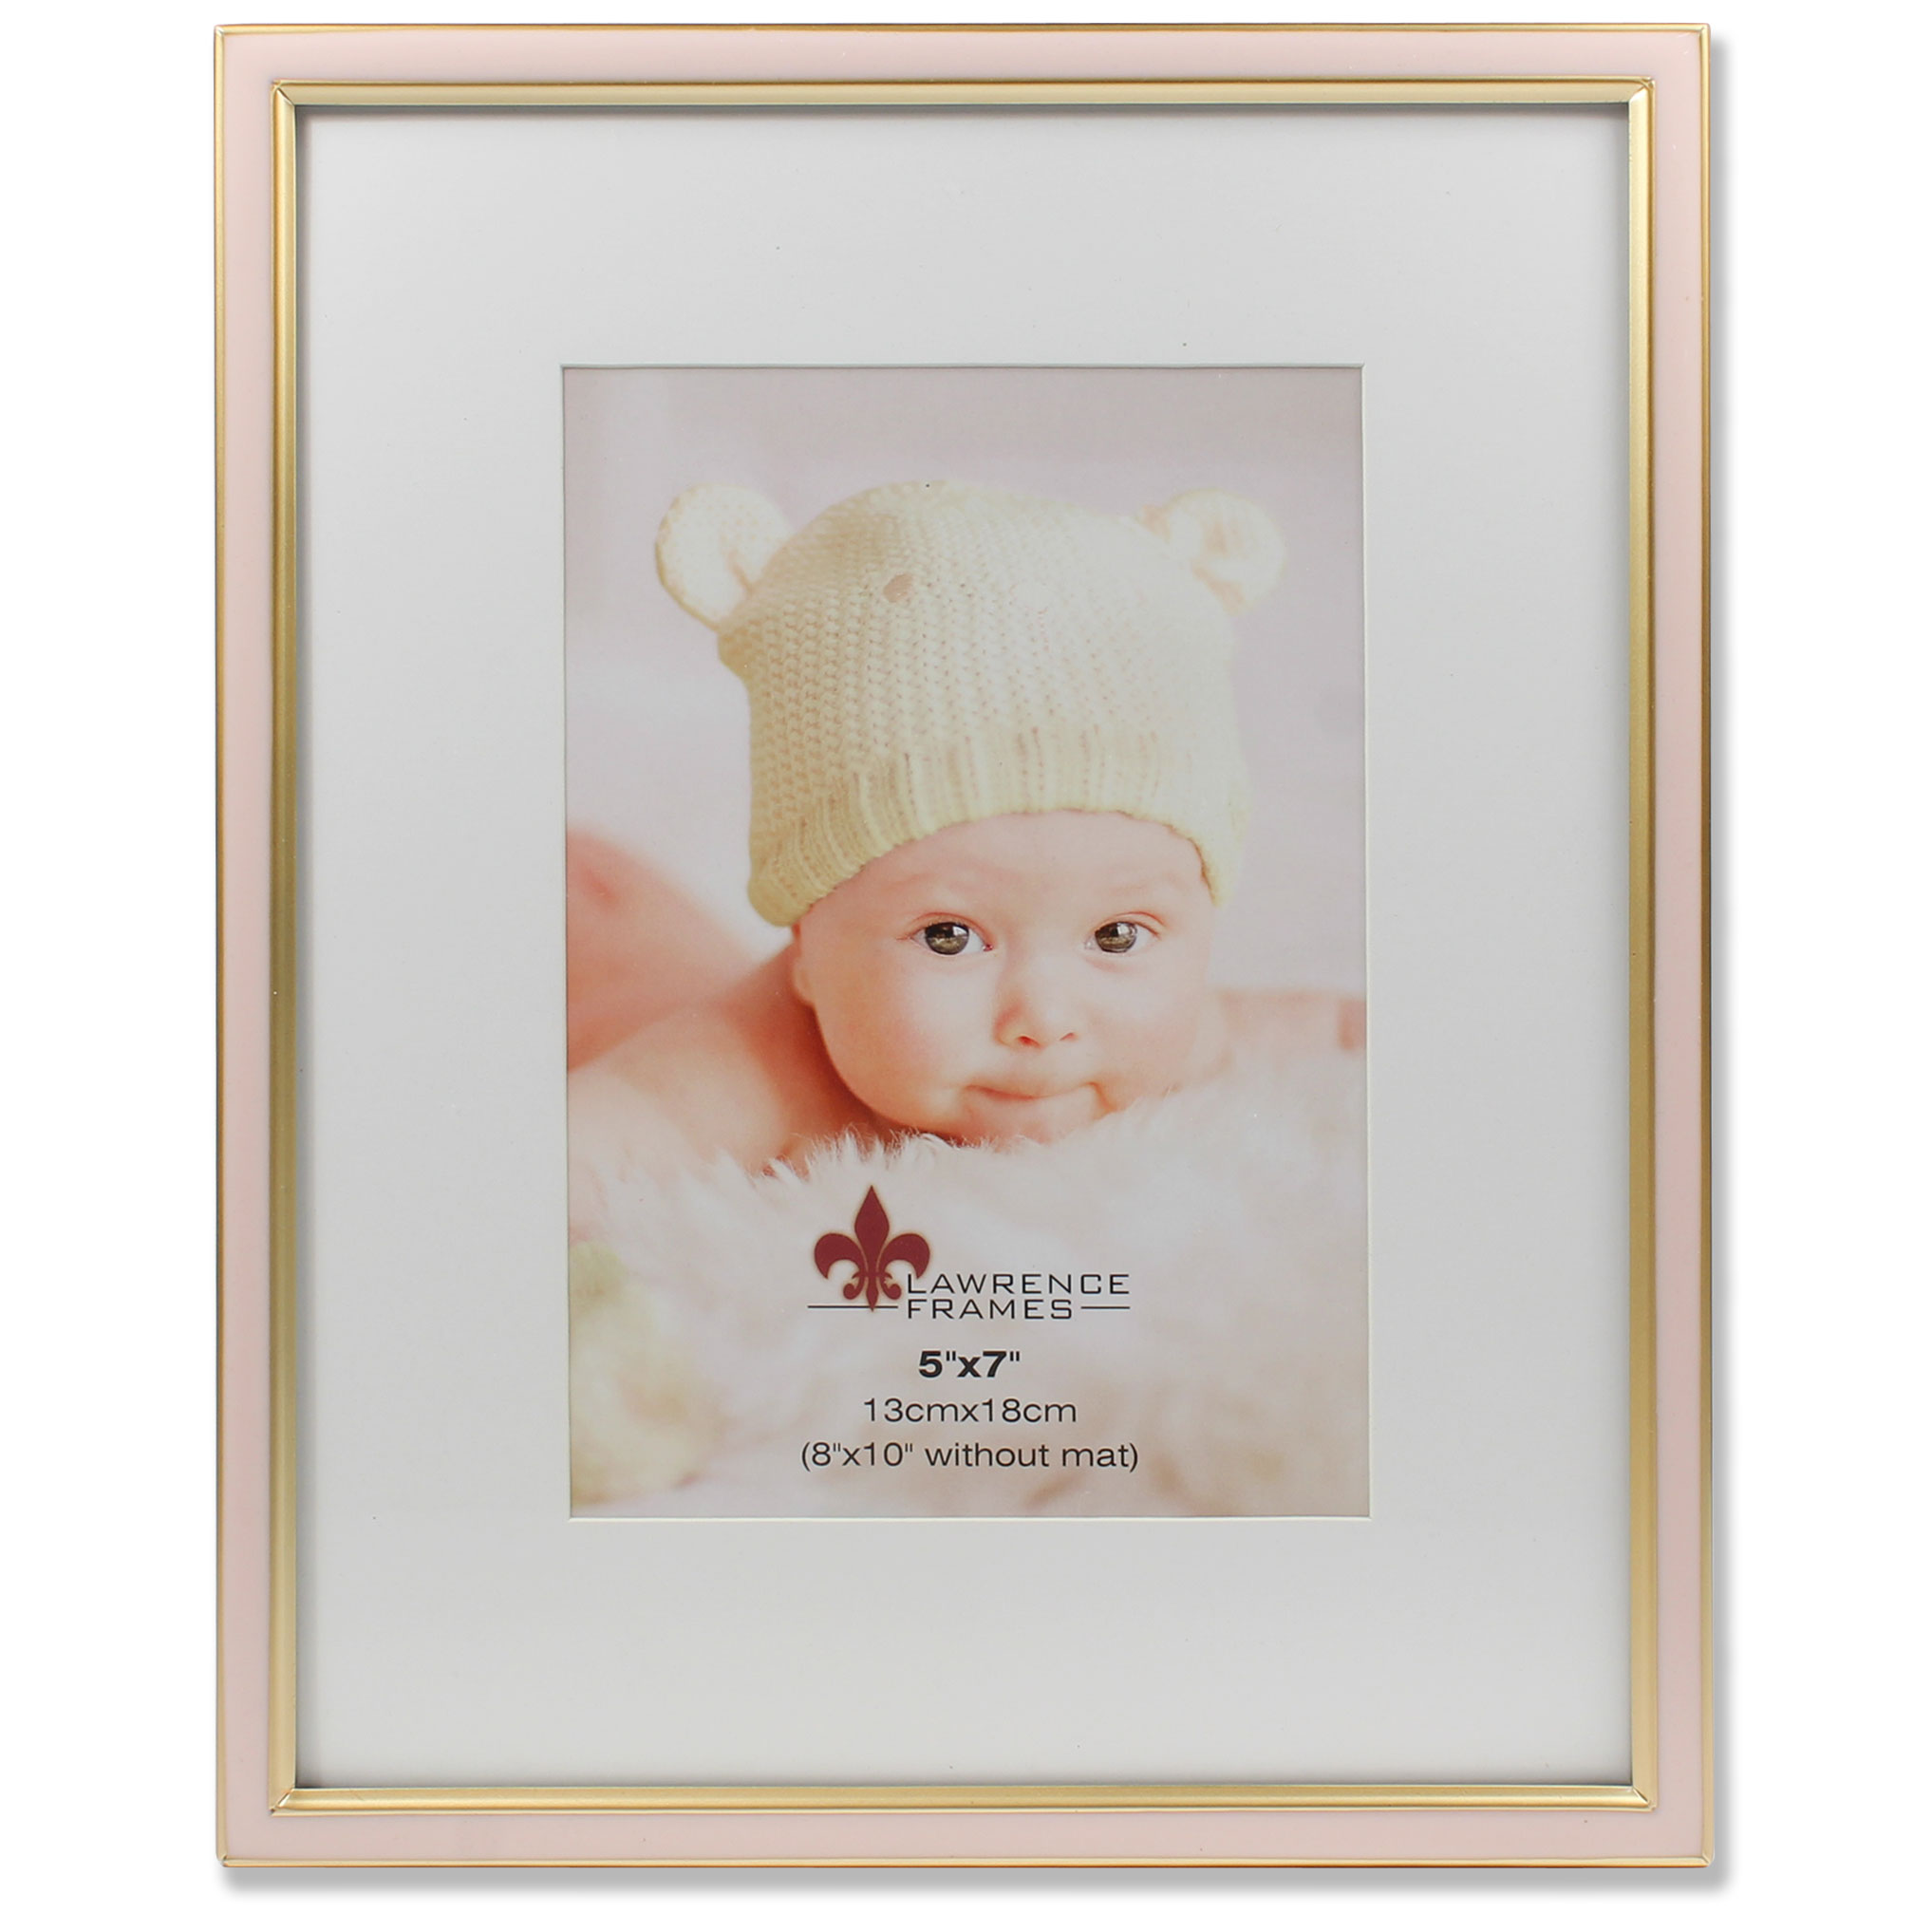 5x7 Matted Pink Enamel And Satin Gold Metal Picture Frame 8x10